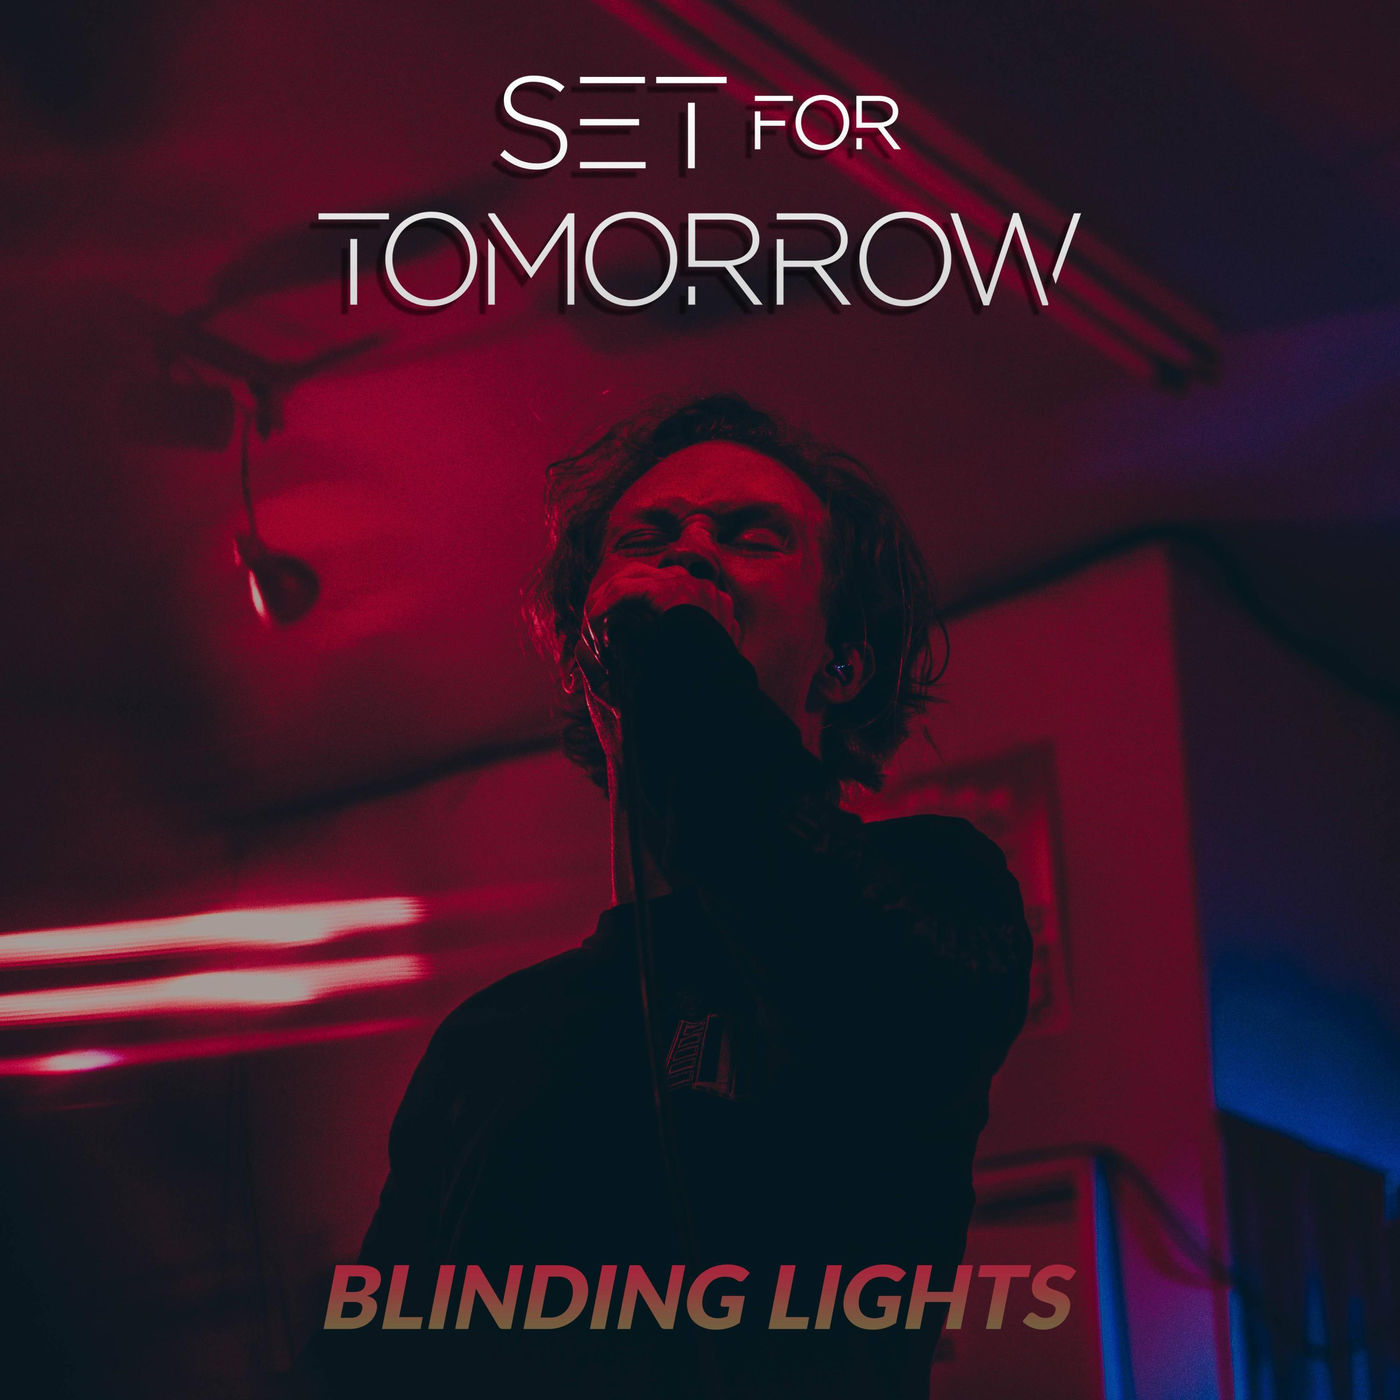 Set for Tomorrow - Blinding Lights [single] (2020)